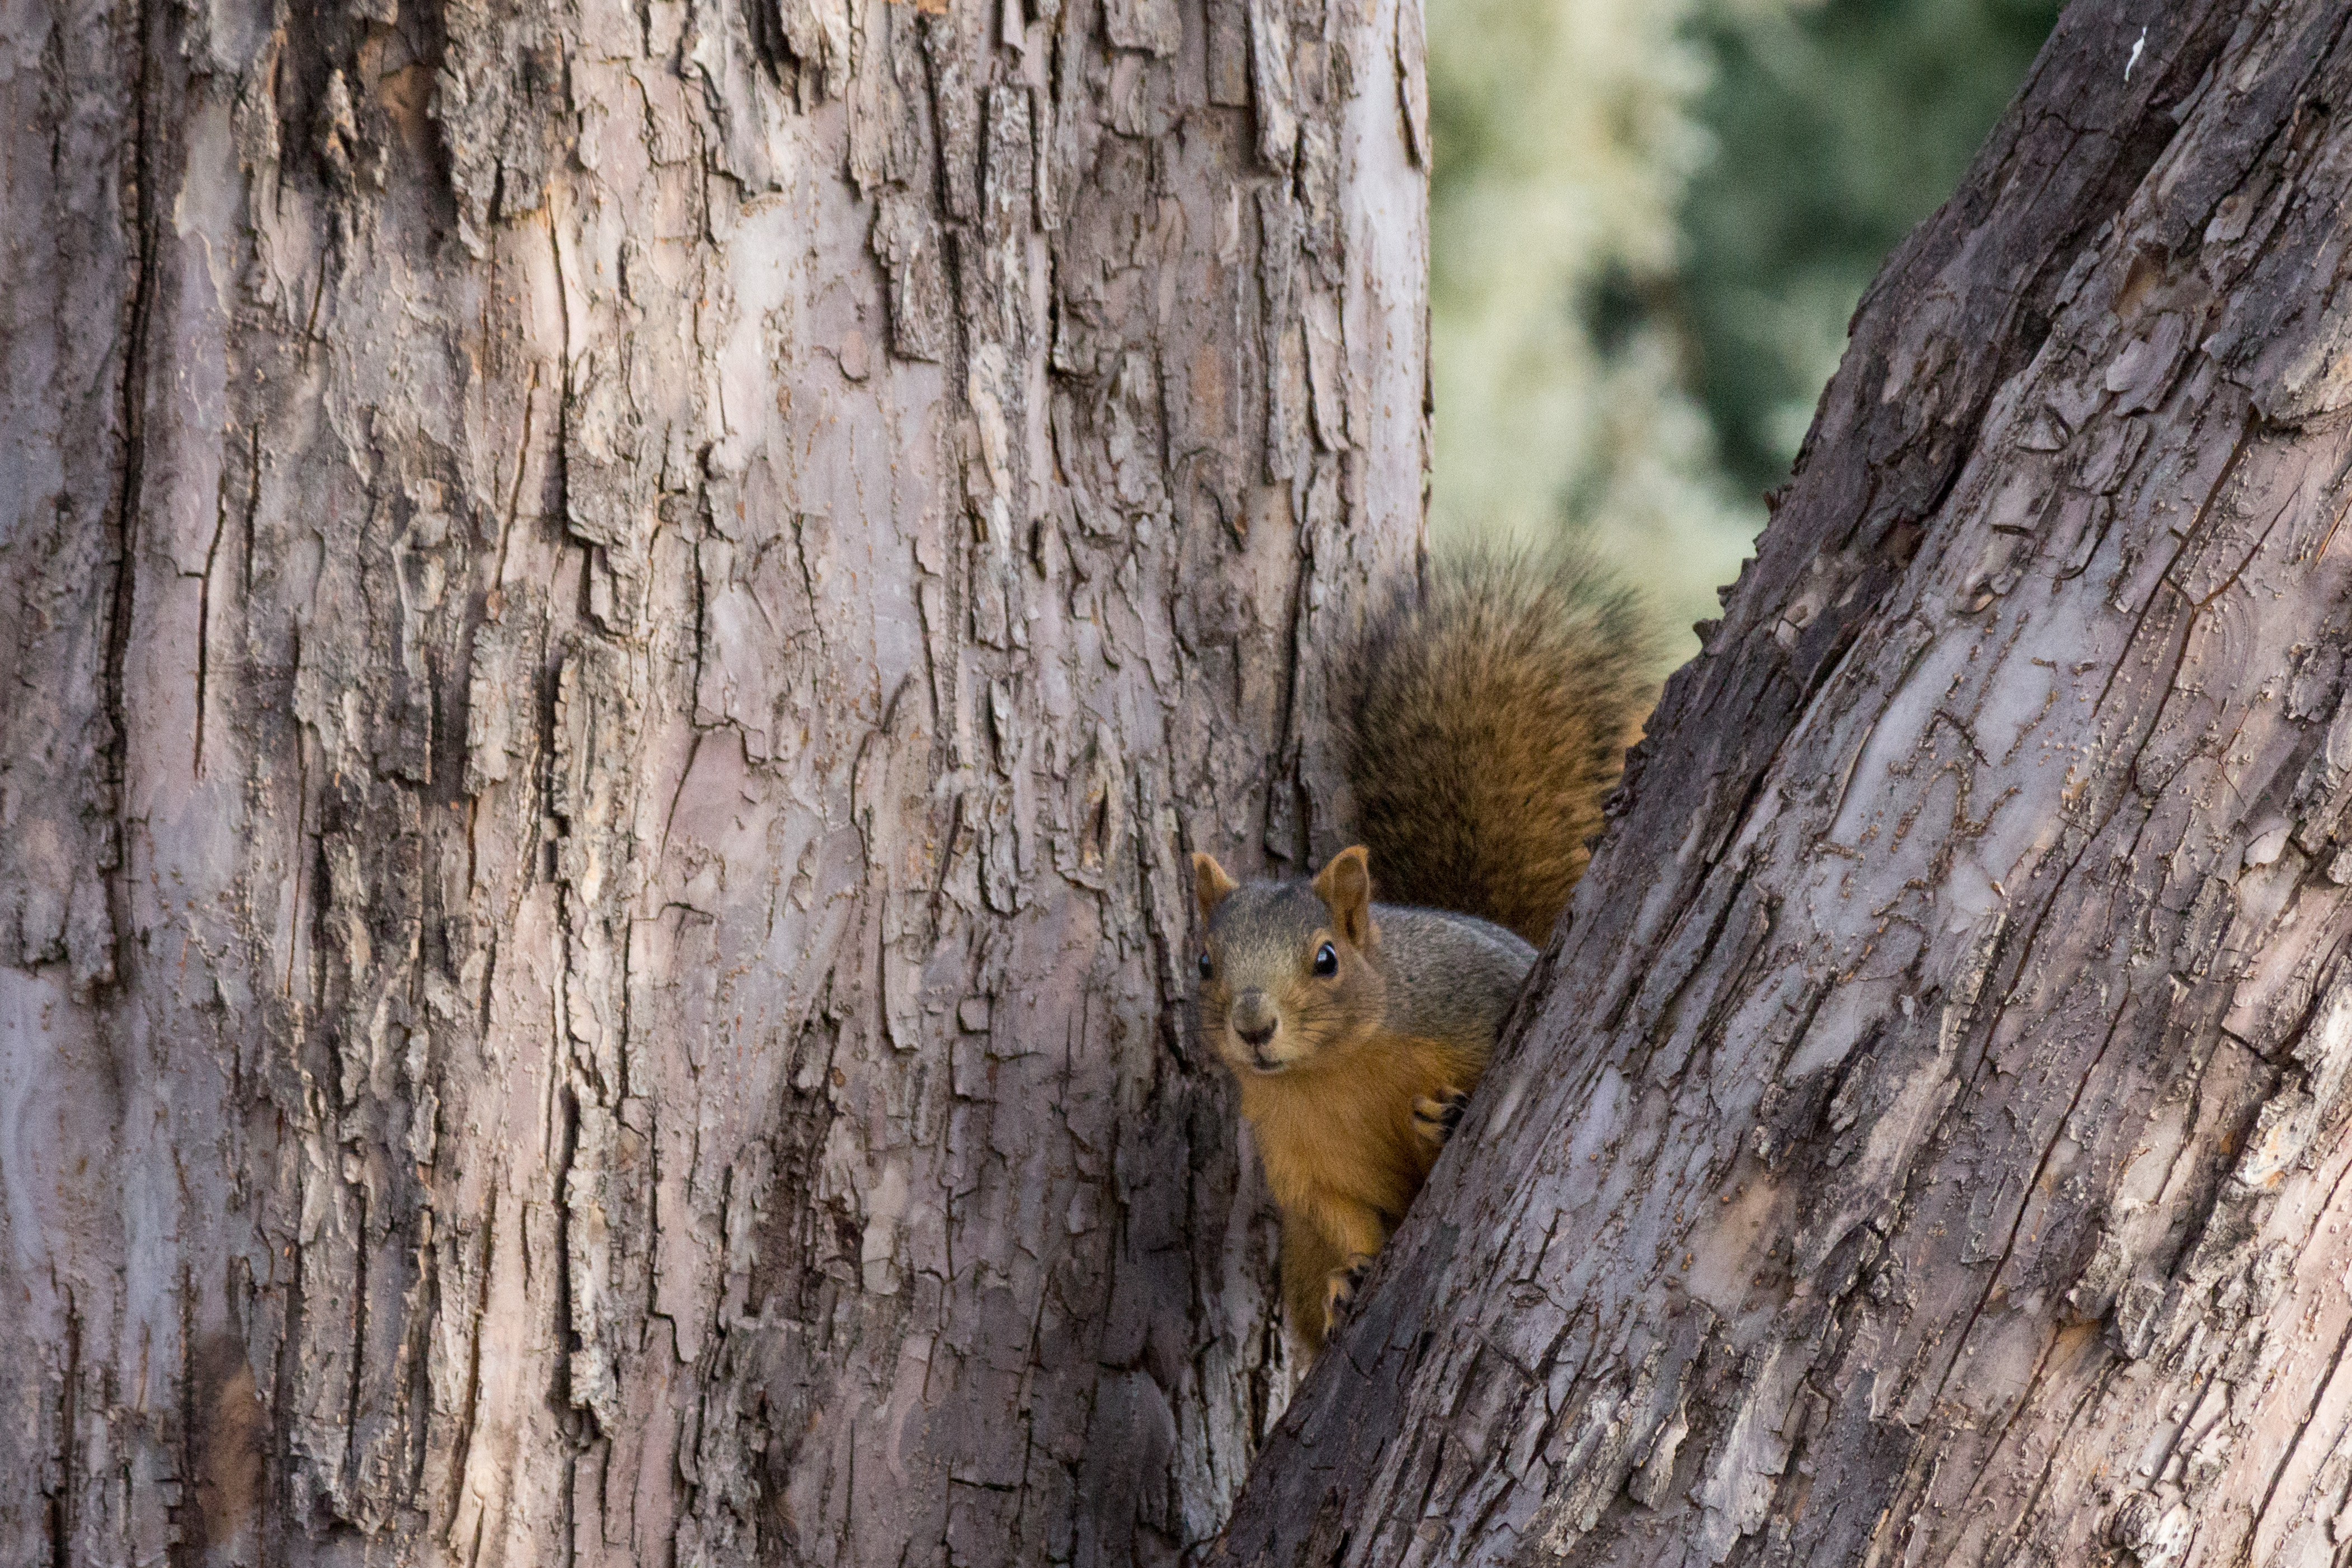 54675 download wallpaper Animals, Squirrel, Wood, Tree, Animal, Peek Out, Look Out screensavers and pictures for free